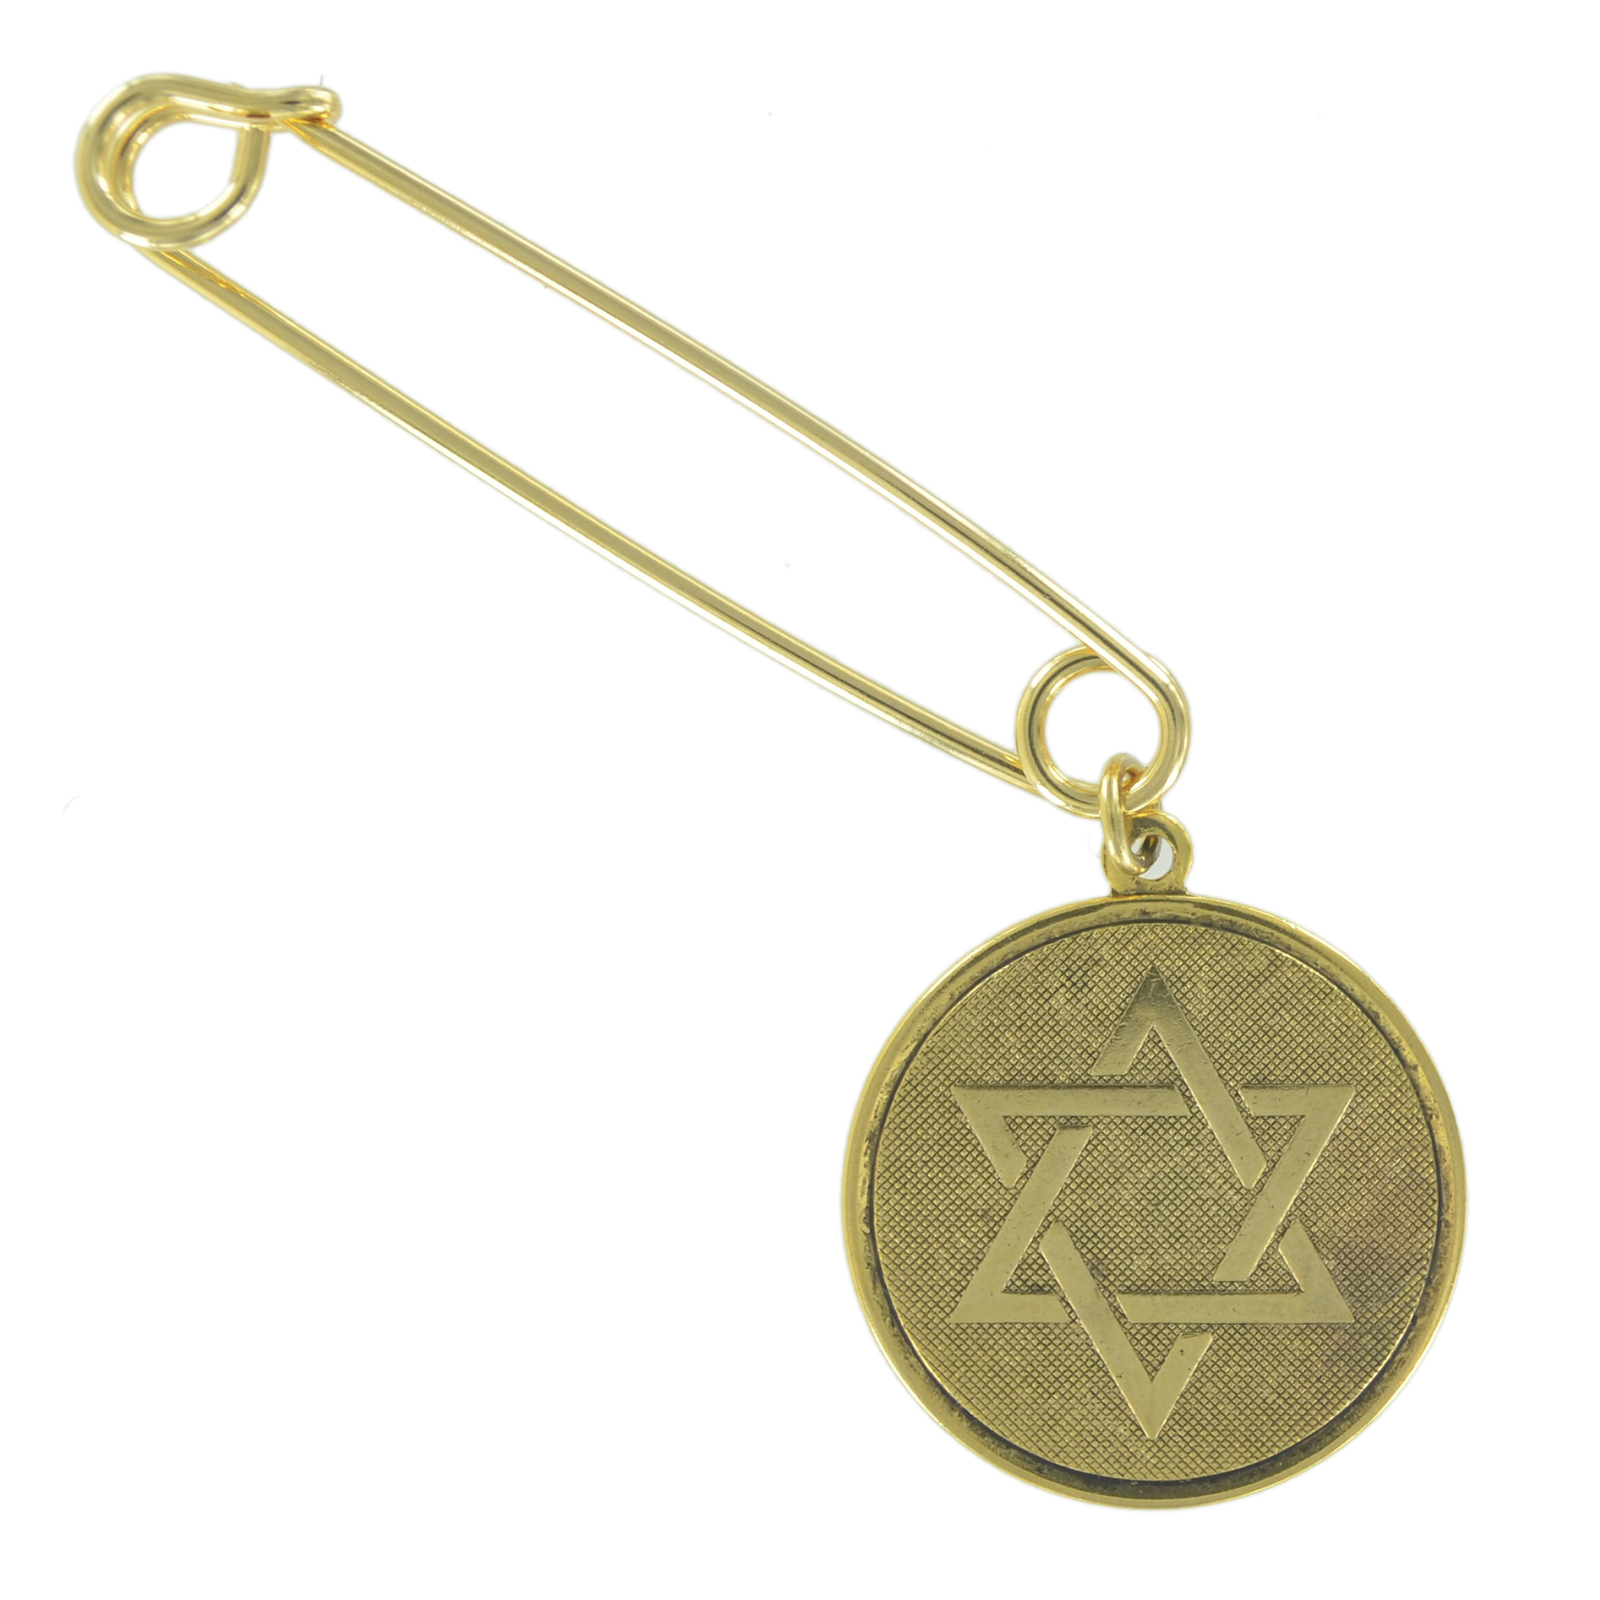 """Safety Pin Brooch 2"""" Gold Tone Jewish Hebrew Star Of David Coin Charm Dangle End by Ky & Co"""